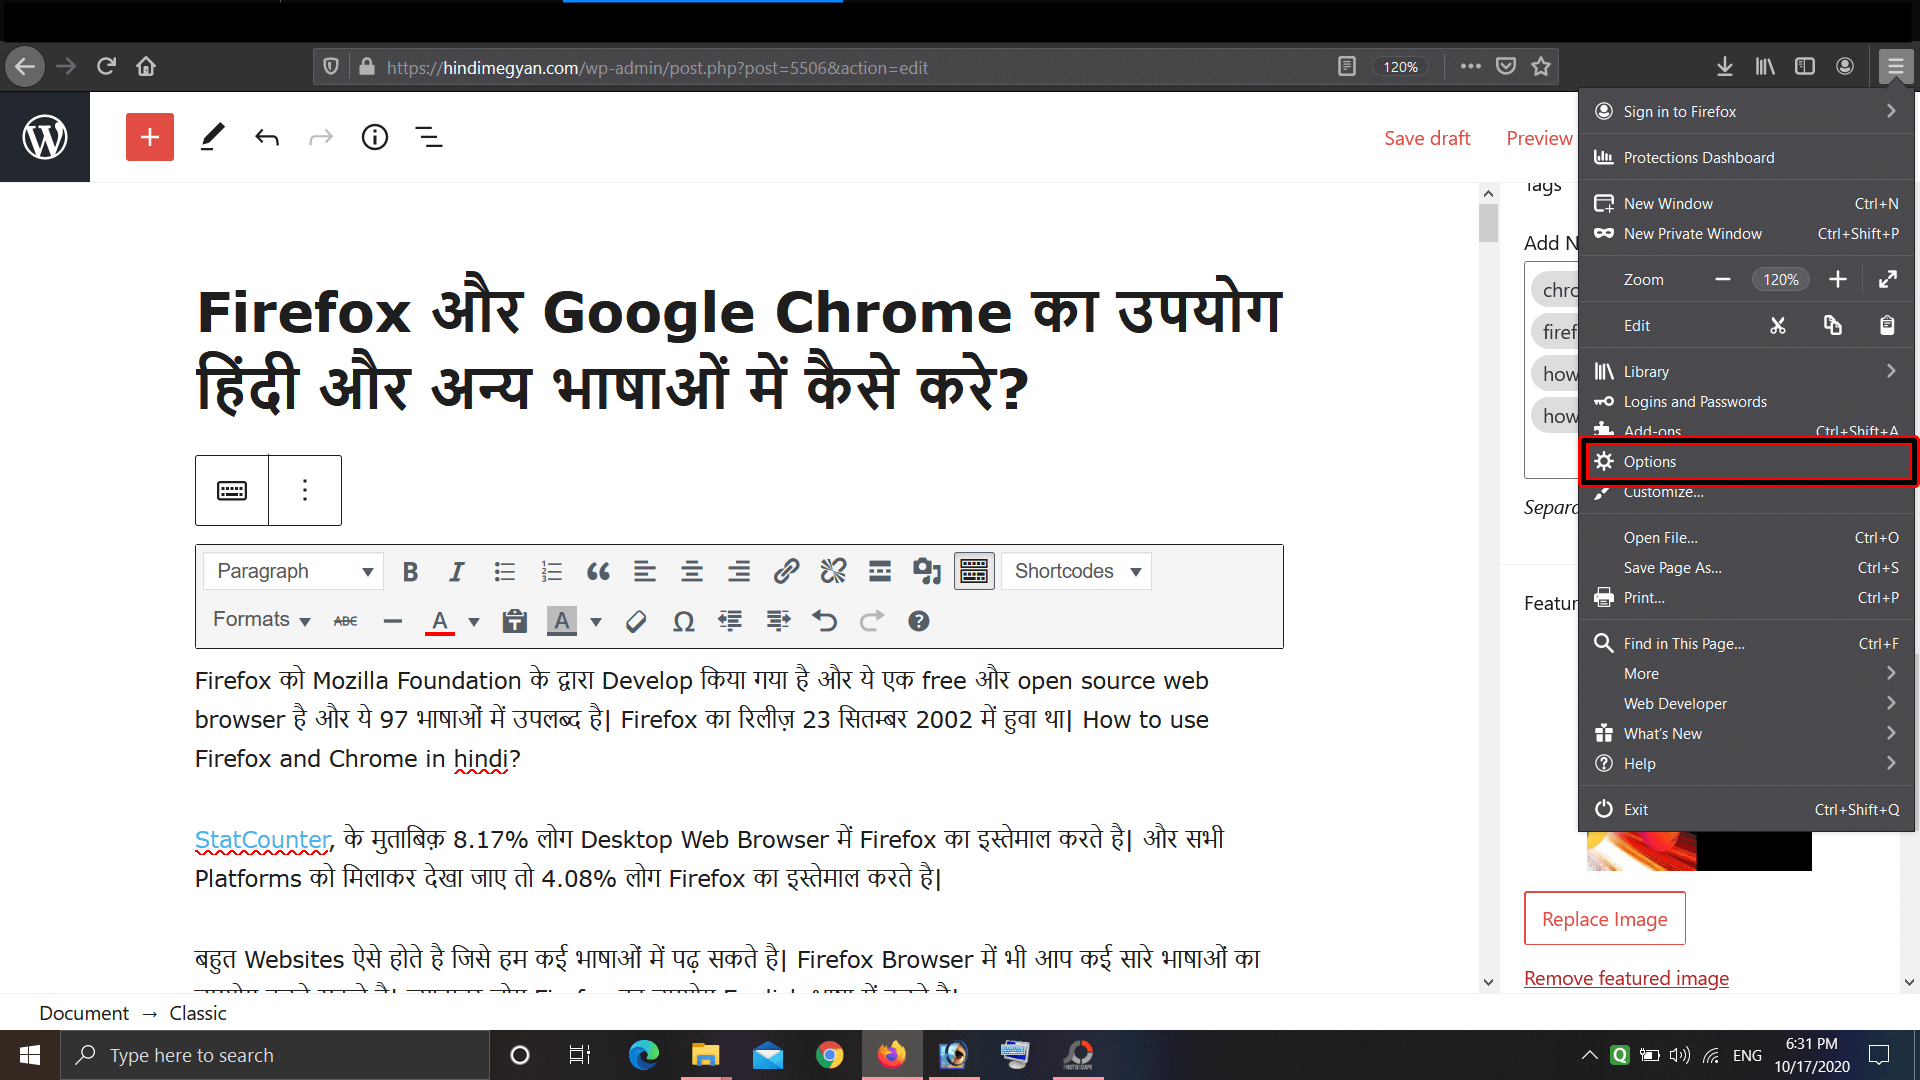 How to use Firefox and Chrome in hindi